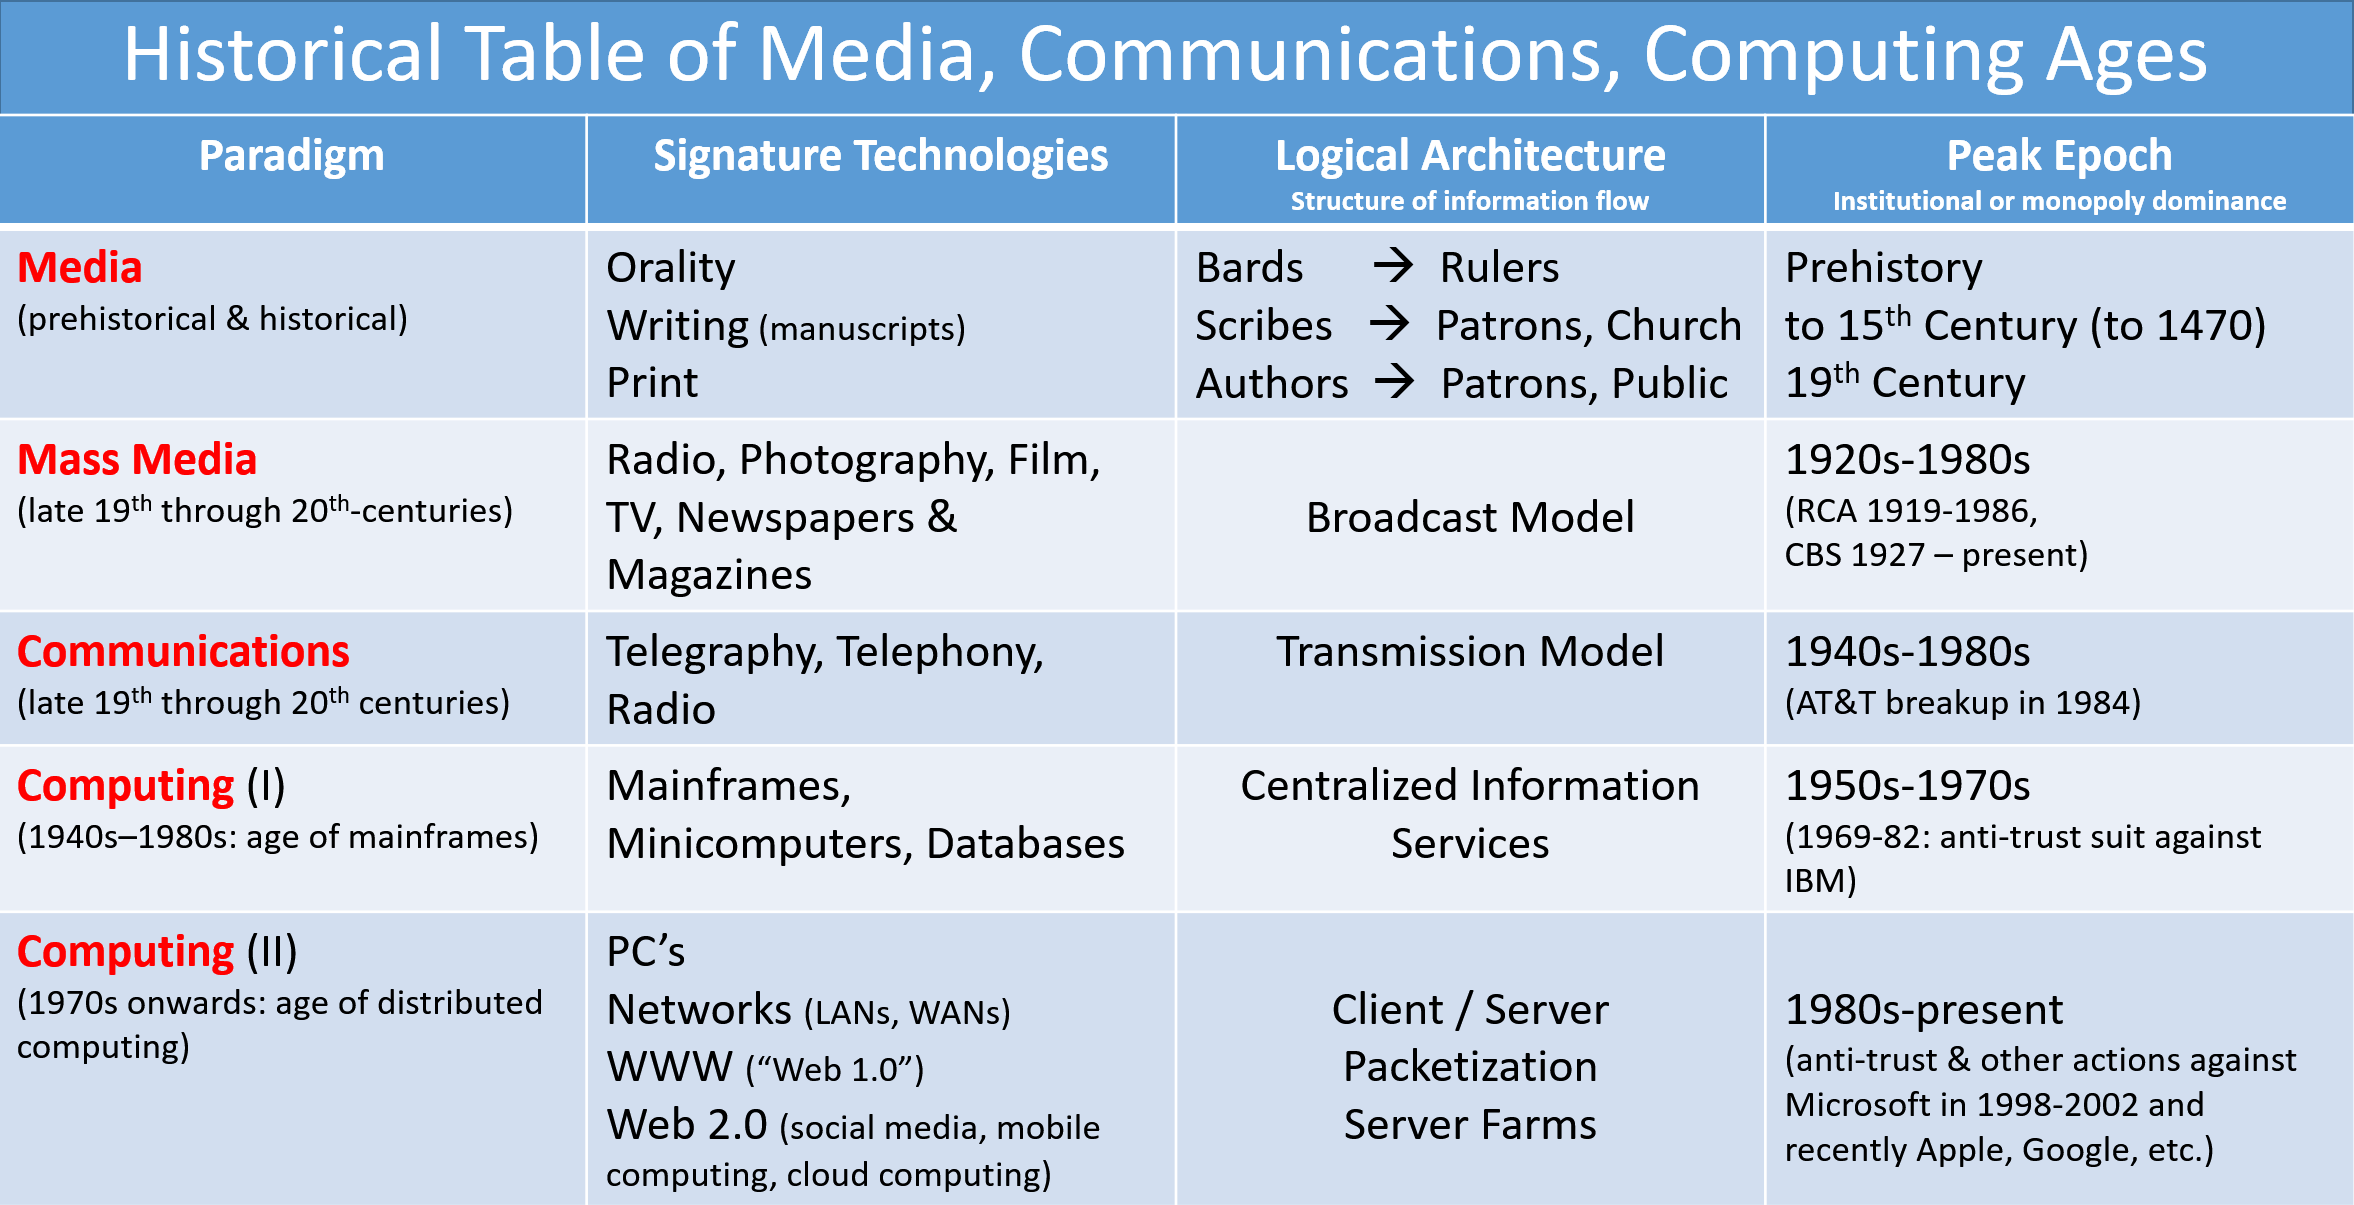 Historical Table of Media, Communication, & Computing Ages